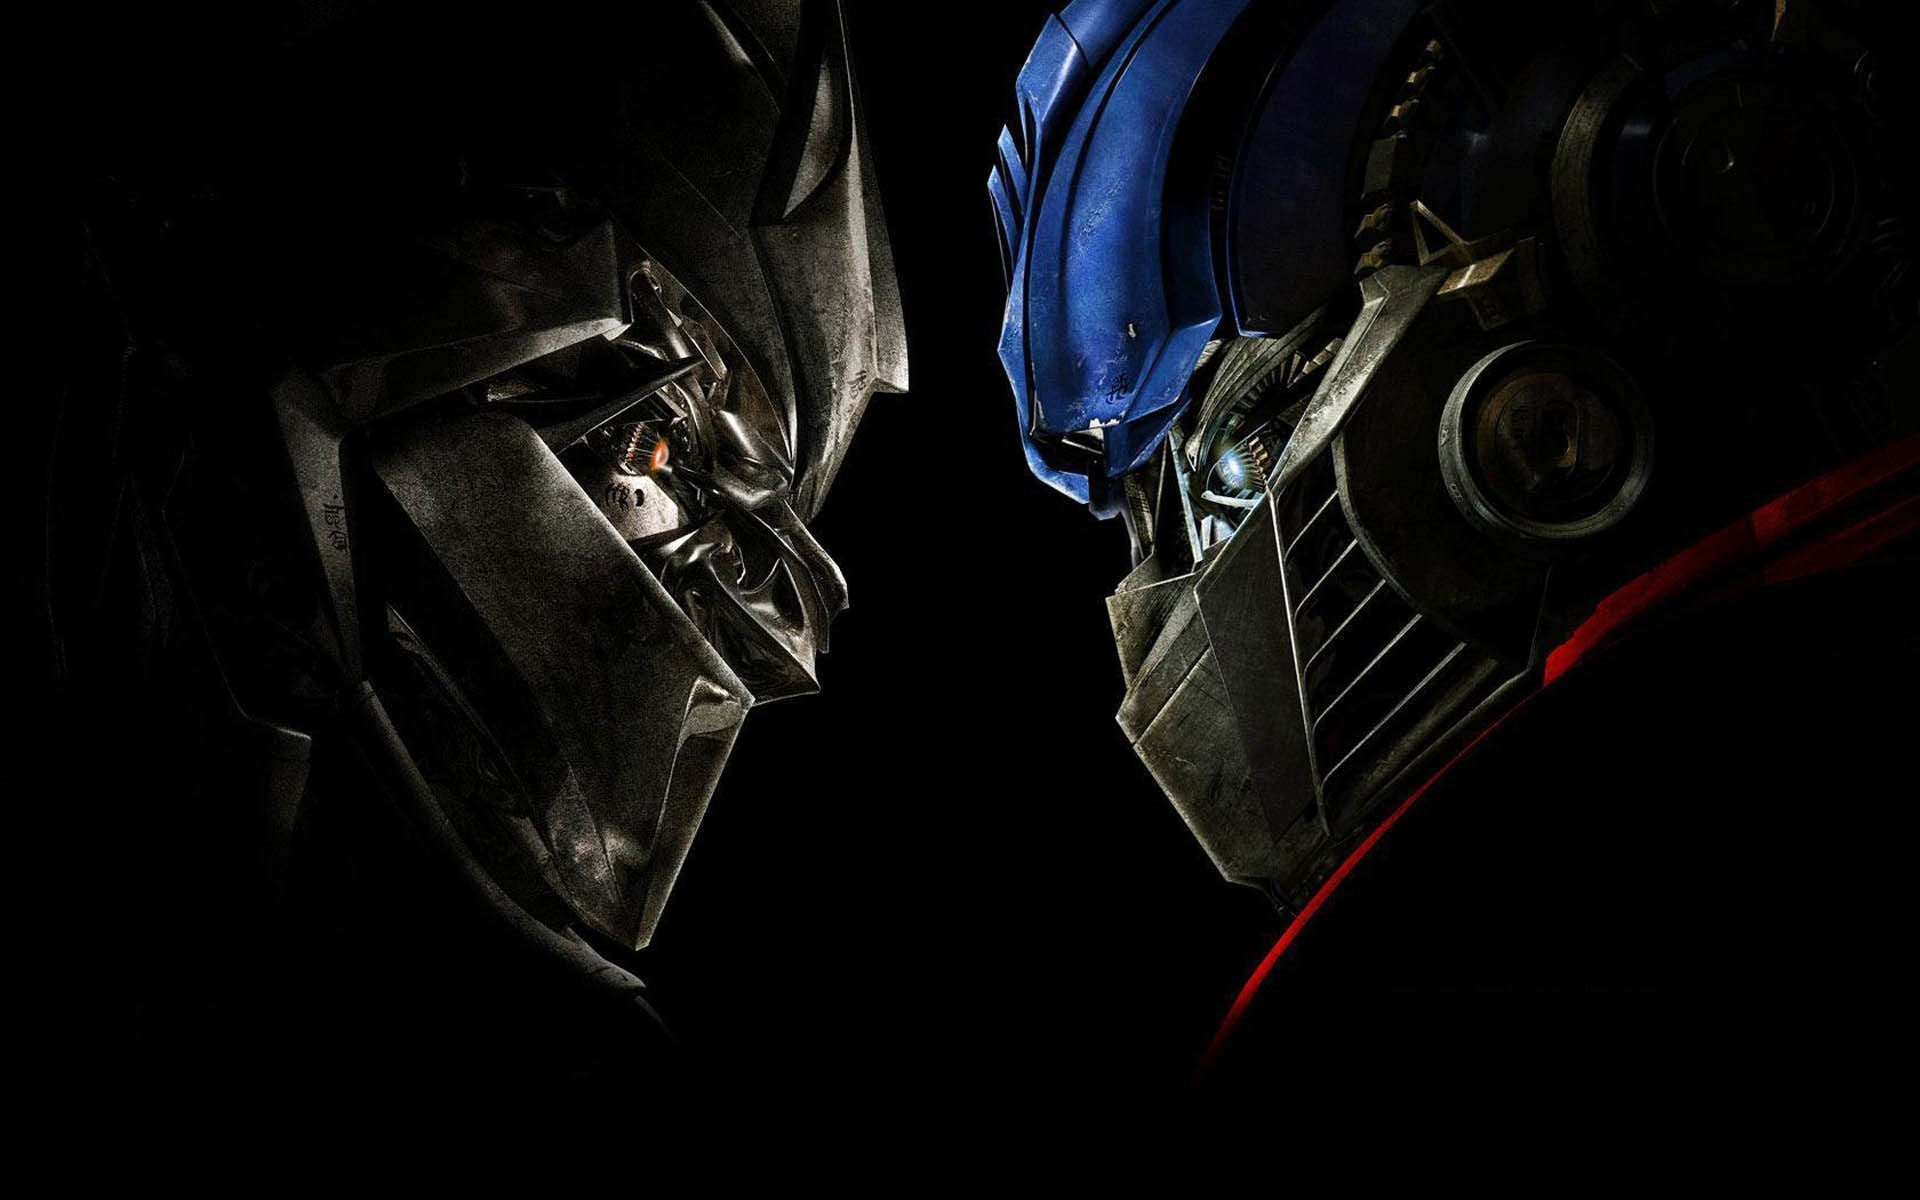 Transformers backgrounds hd Wallpaper and make this wallpaper for your 1920x1200